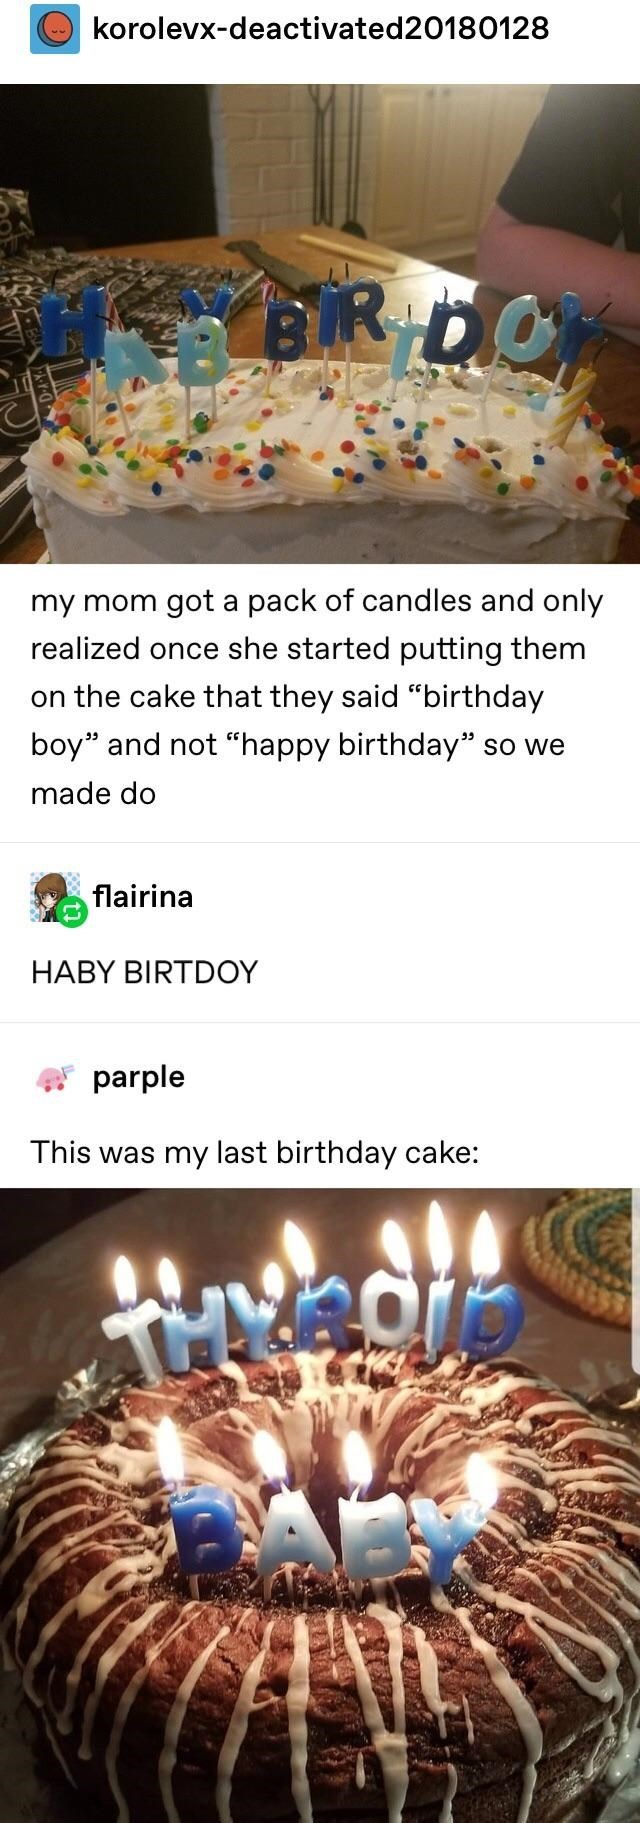 "Candle - korolevx-deactivated20180128 my mom got a pack of candles and only realized once she started putting them on the cake that they said ""birthday boy"" and not ""happy birthday"" so we made do flairina HABY BIRTDOY parple This was my last birthday cake:"